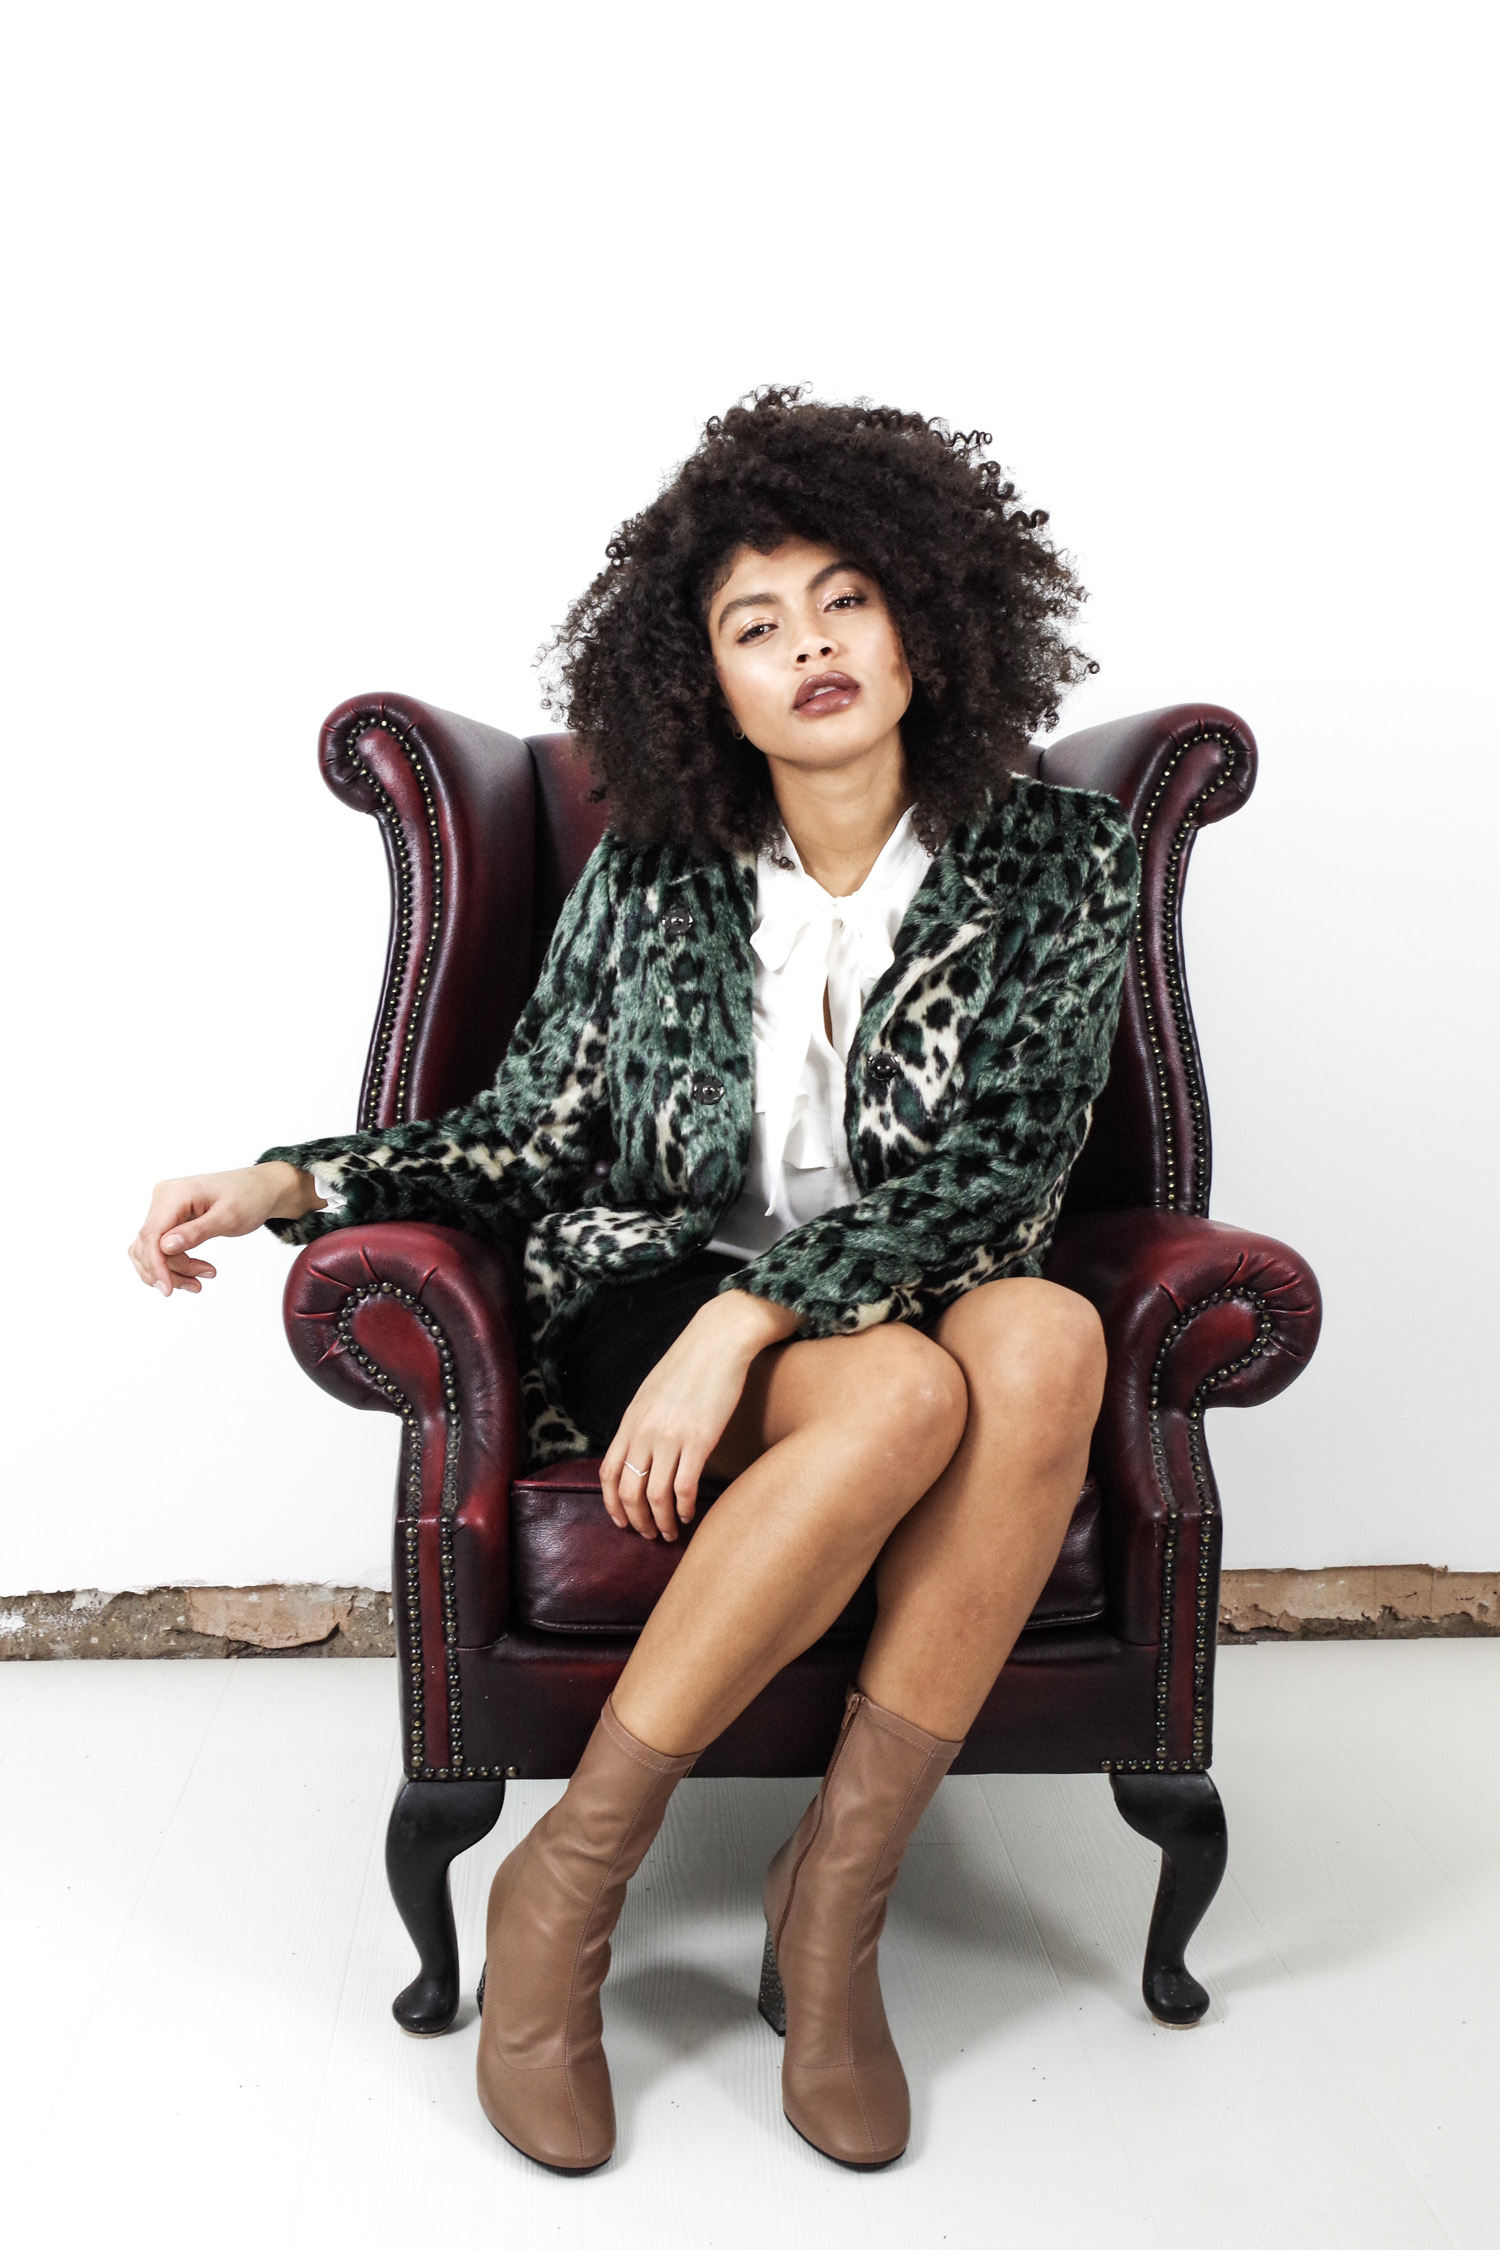 Faux fur coat and afro